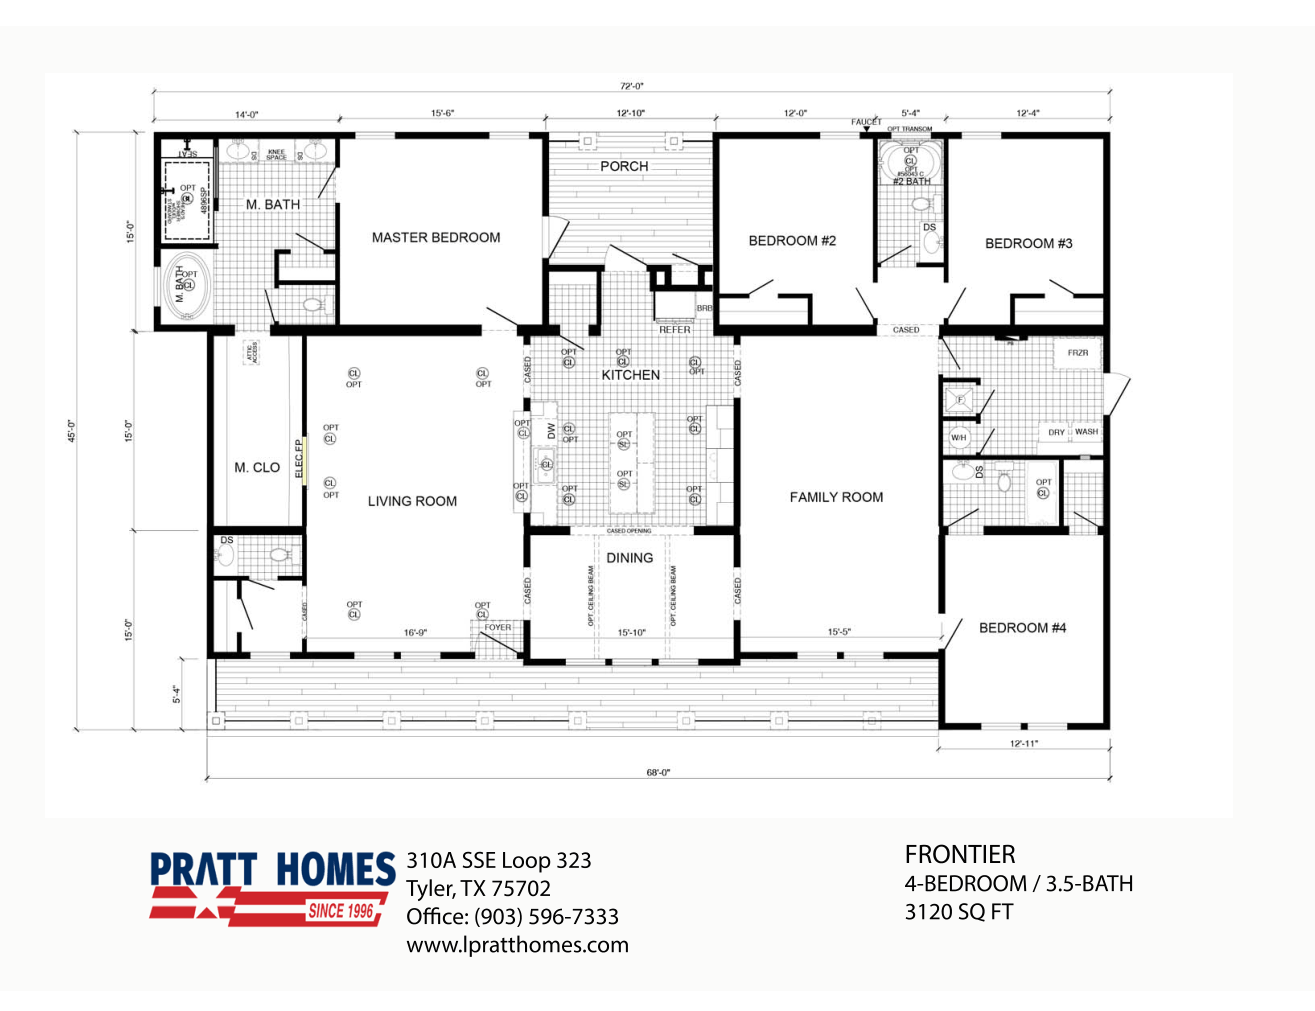 Floor Plan for house model Frontier by Pratt from Tyler Texas